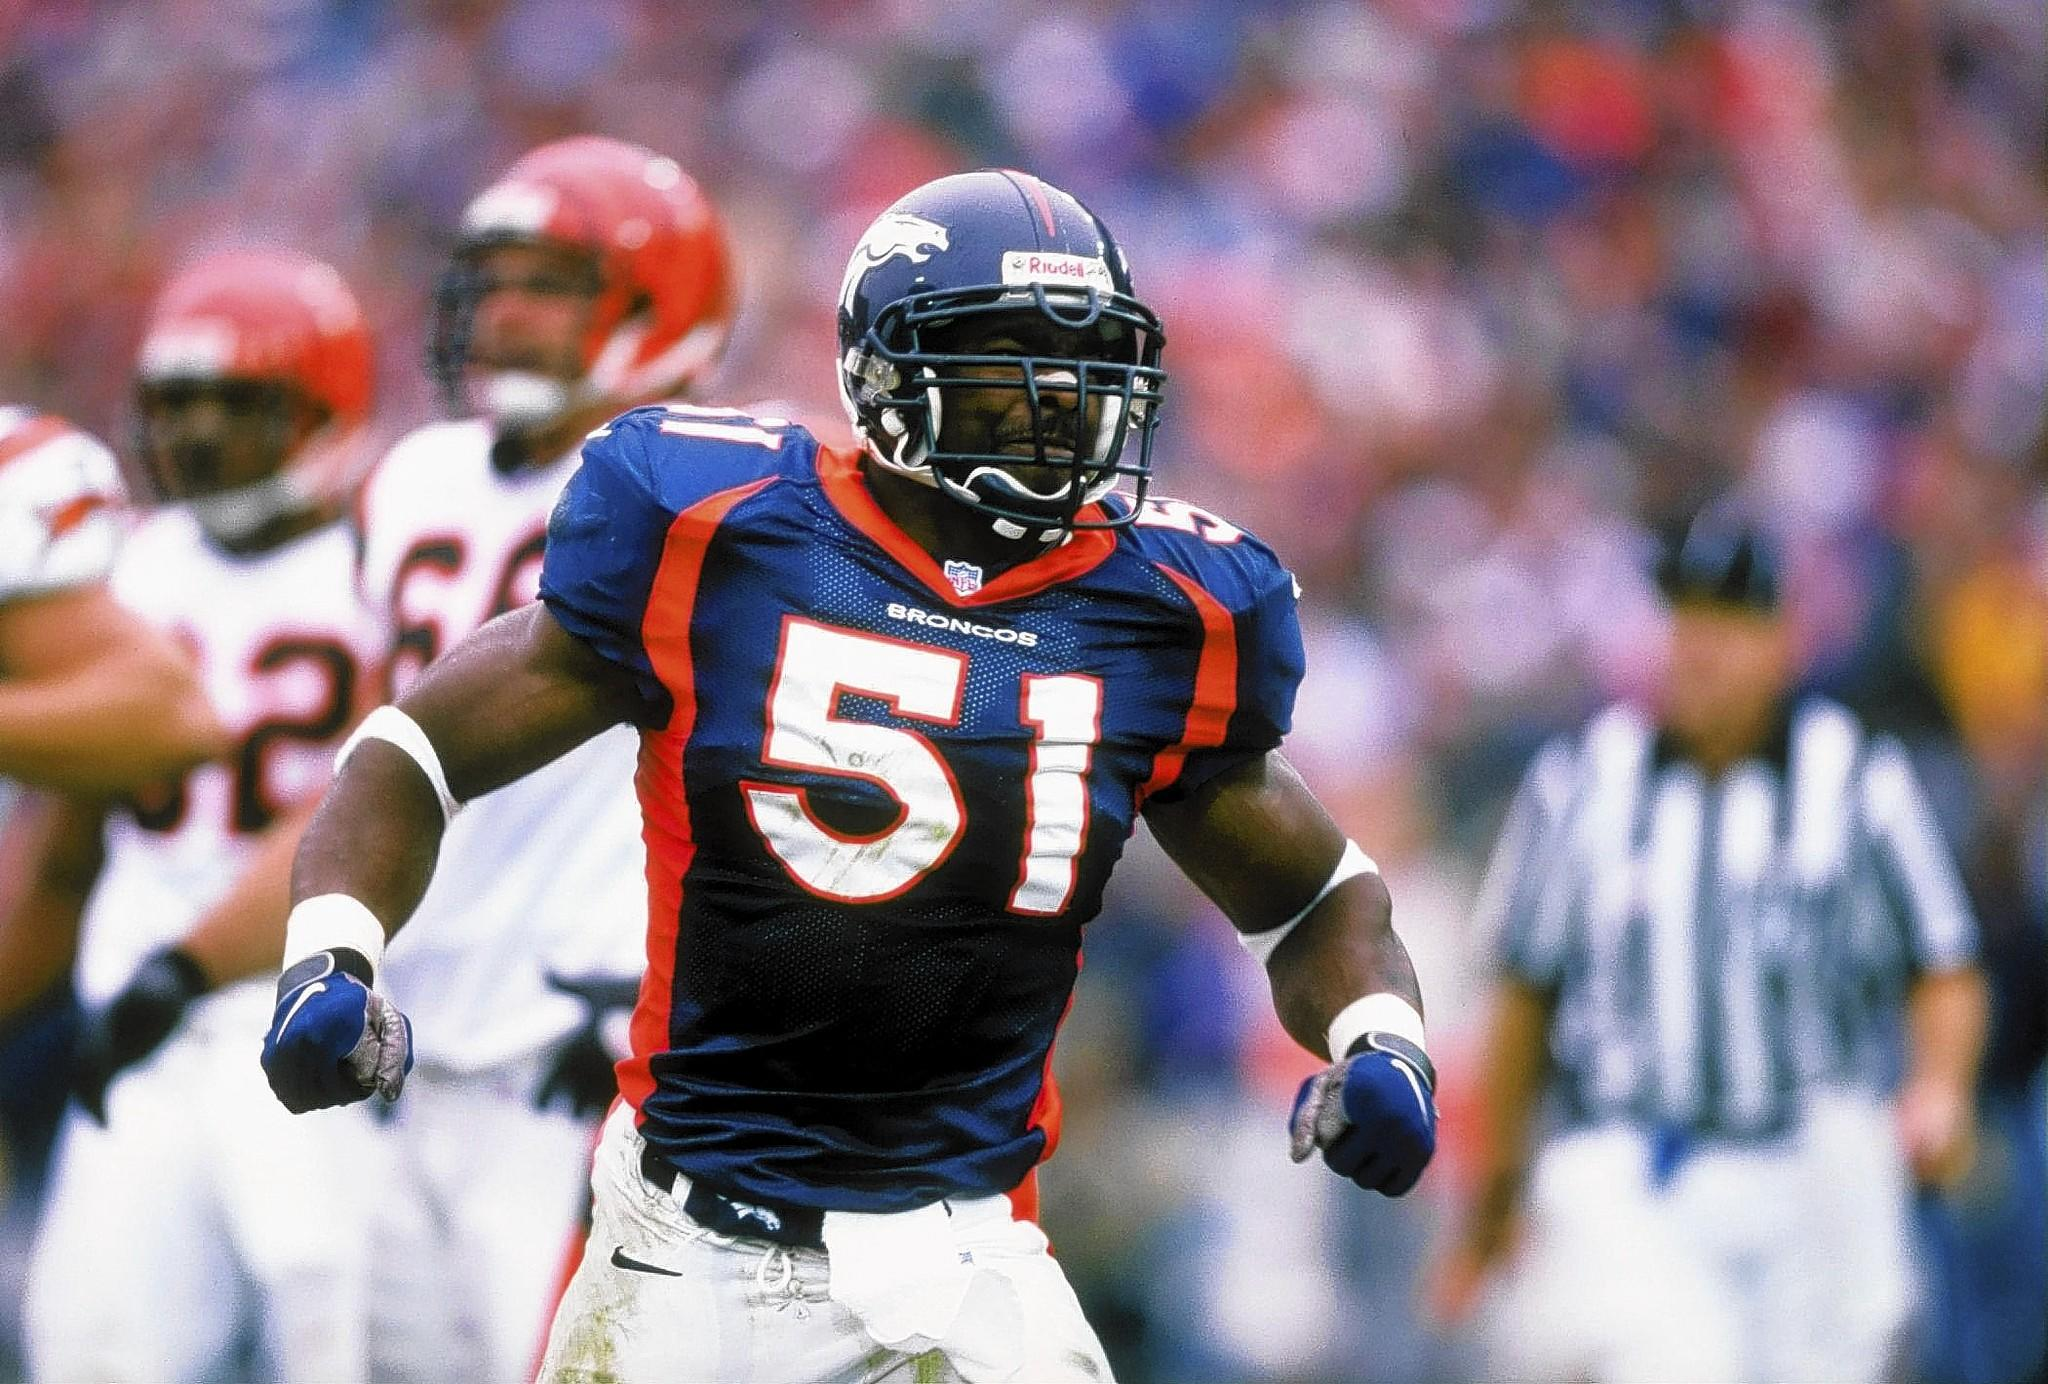 21 Sep 1997: Linebacker John Mobley #51 of the Denver Broncos celebrates during the Broncos 38-20 win over the Cincinnati Bengals at Mile High Stadium in Denver, Colorado.